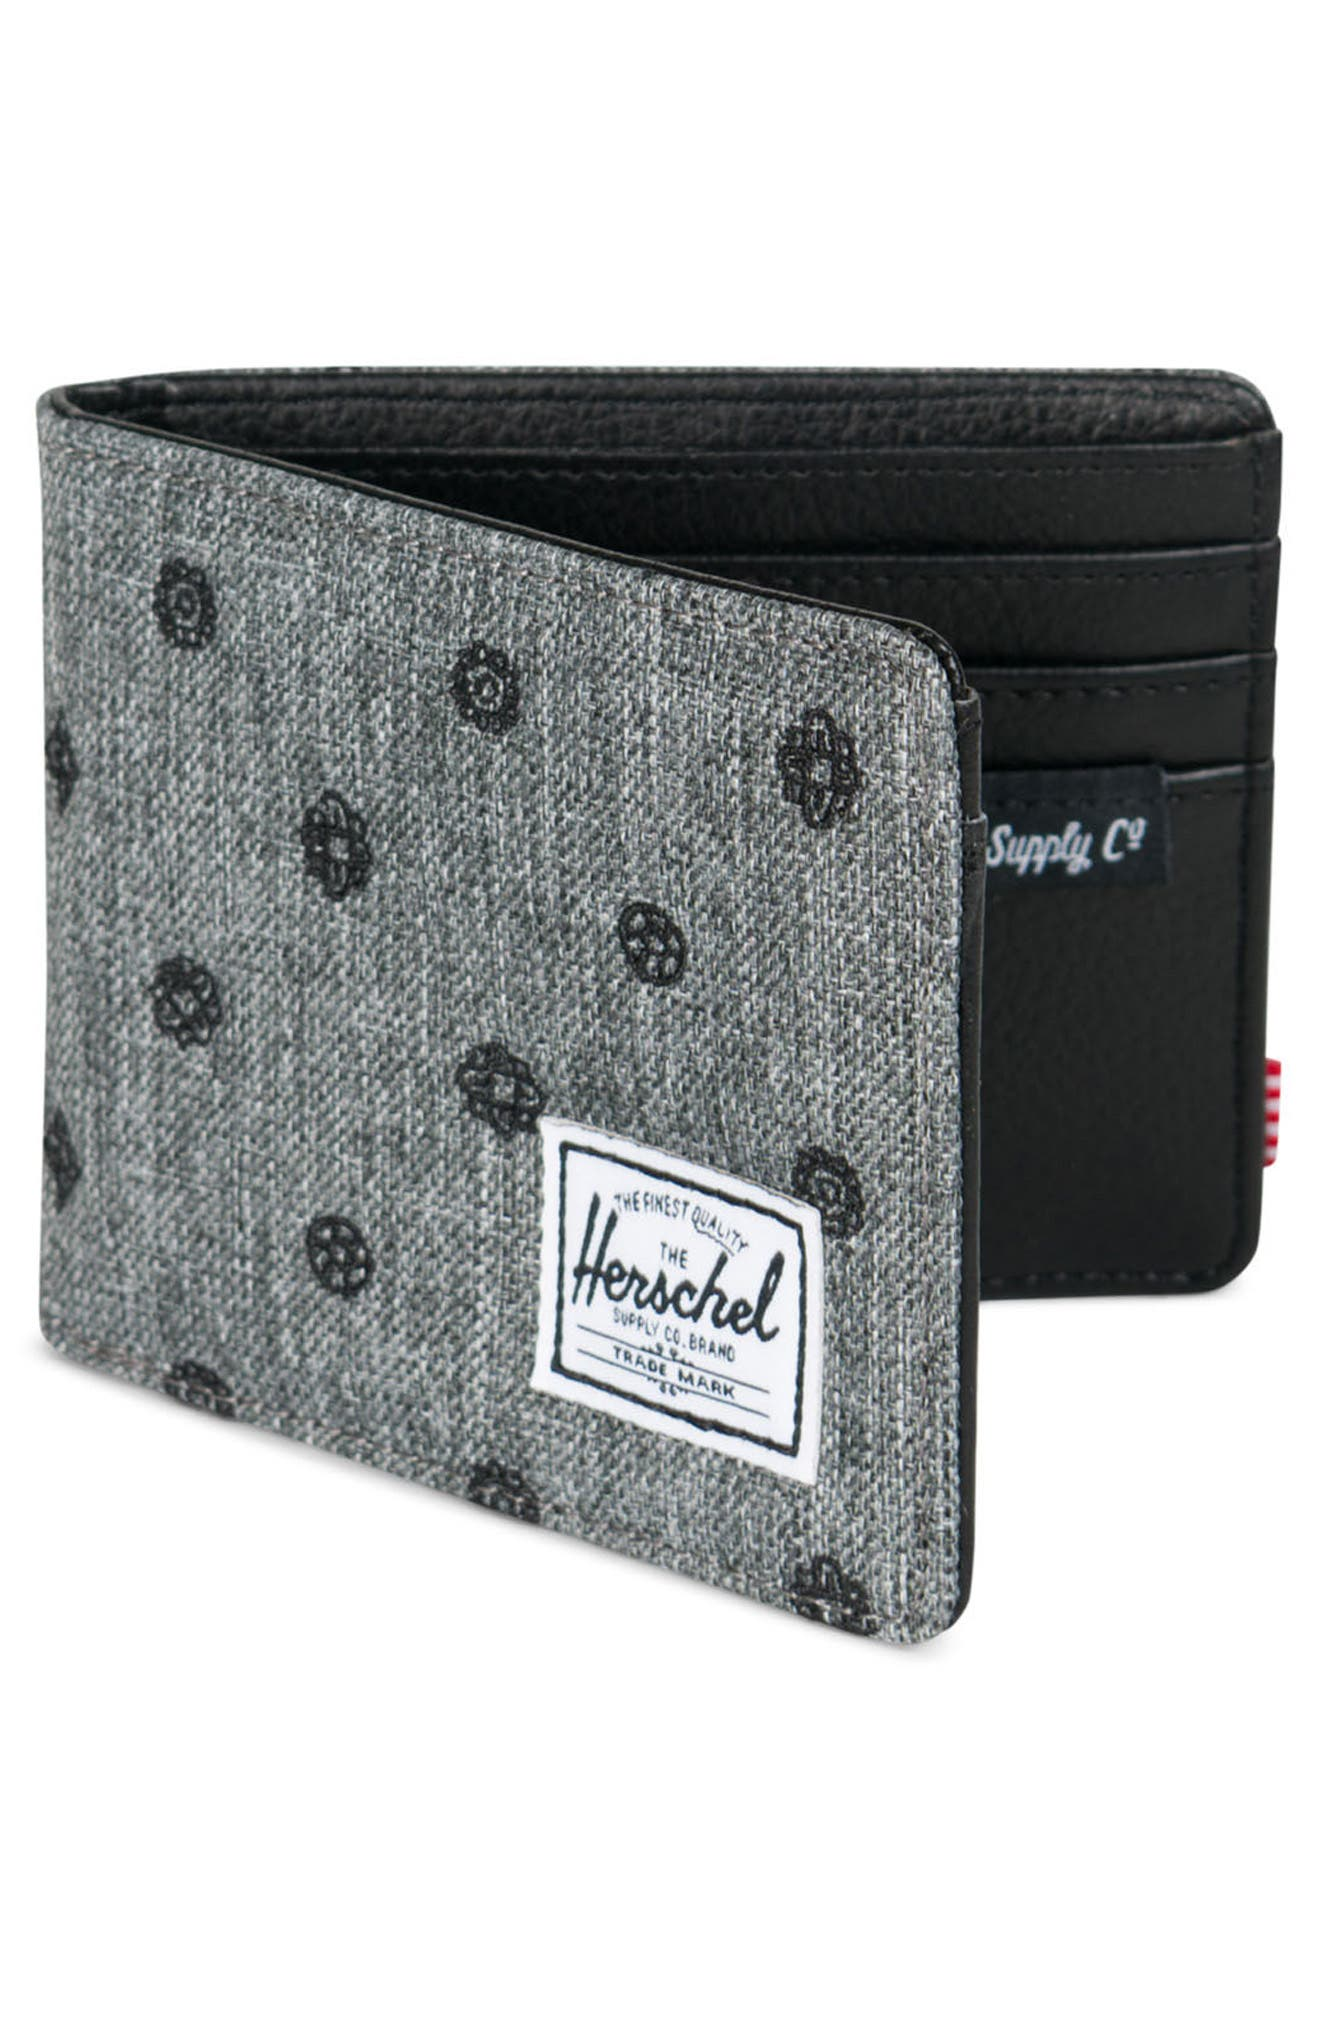 Hank RFID Wallet,                             Alternate thumbnail 3, color,                             Raven Crosshatch Embroidery